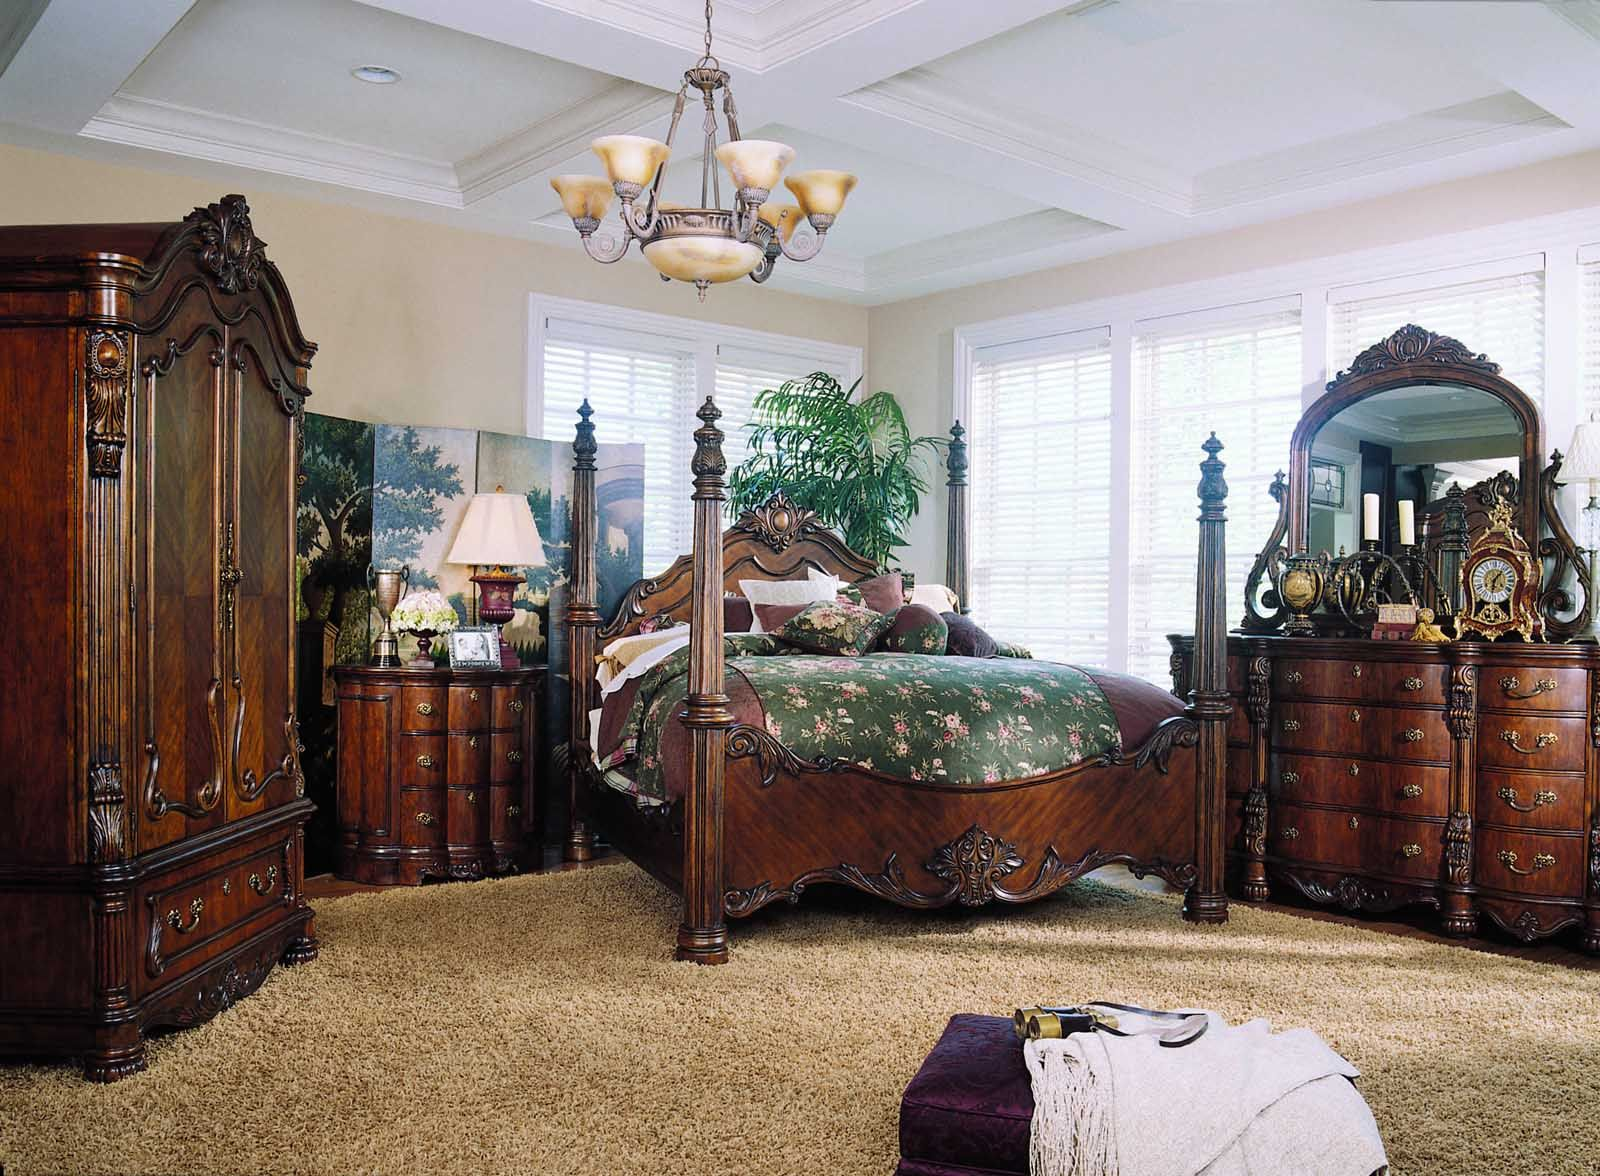 Pulaski edwardian 4 piece poster bedroom set sale great - Four poster bedroom sets for sale ...